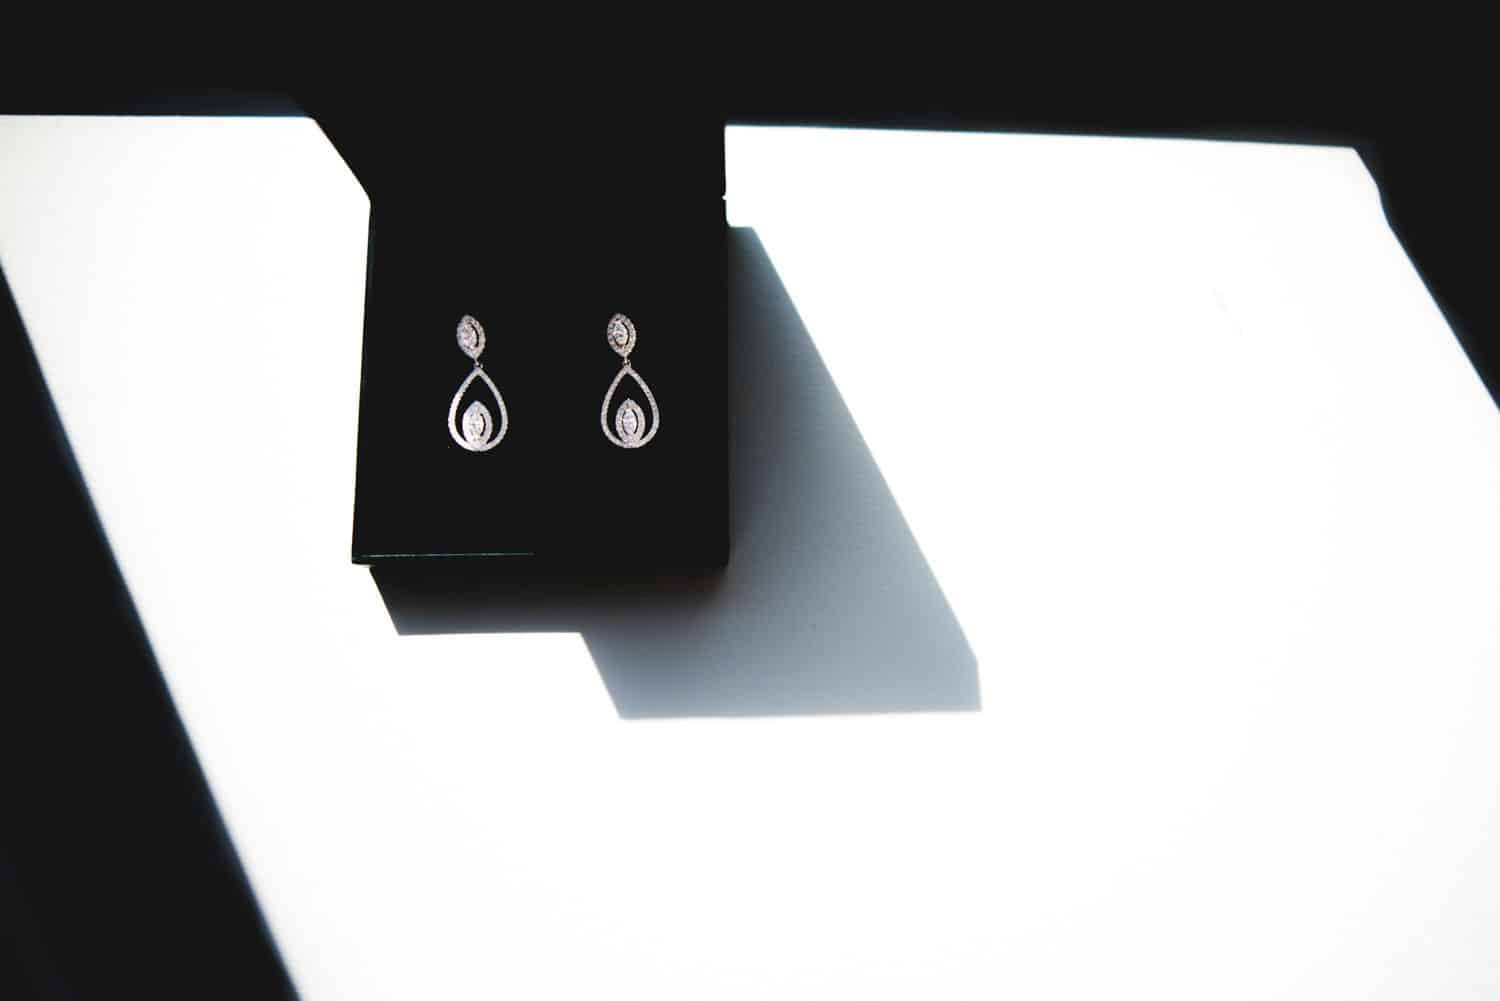 Photography Trends: Black and White Photo of Earrings